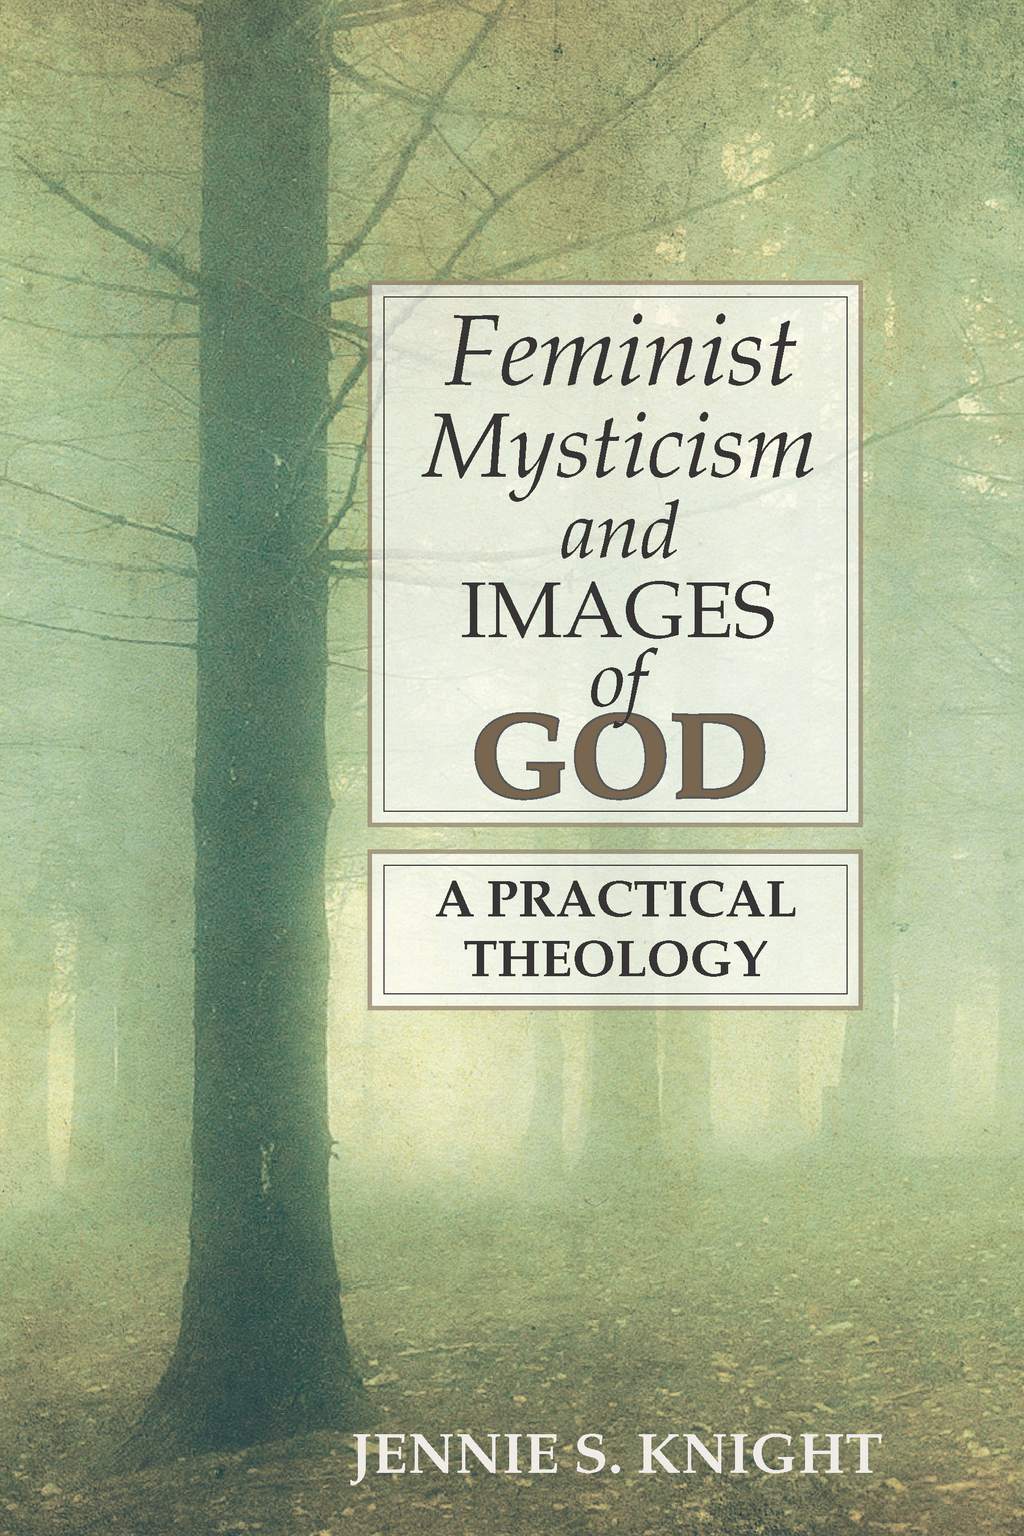 Feminist Mysticism and Images of God: A Practical Theology